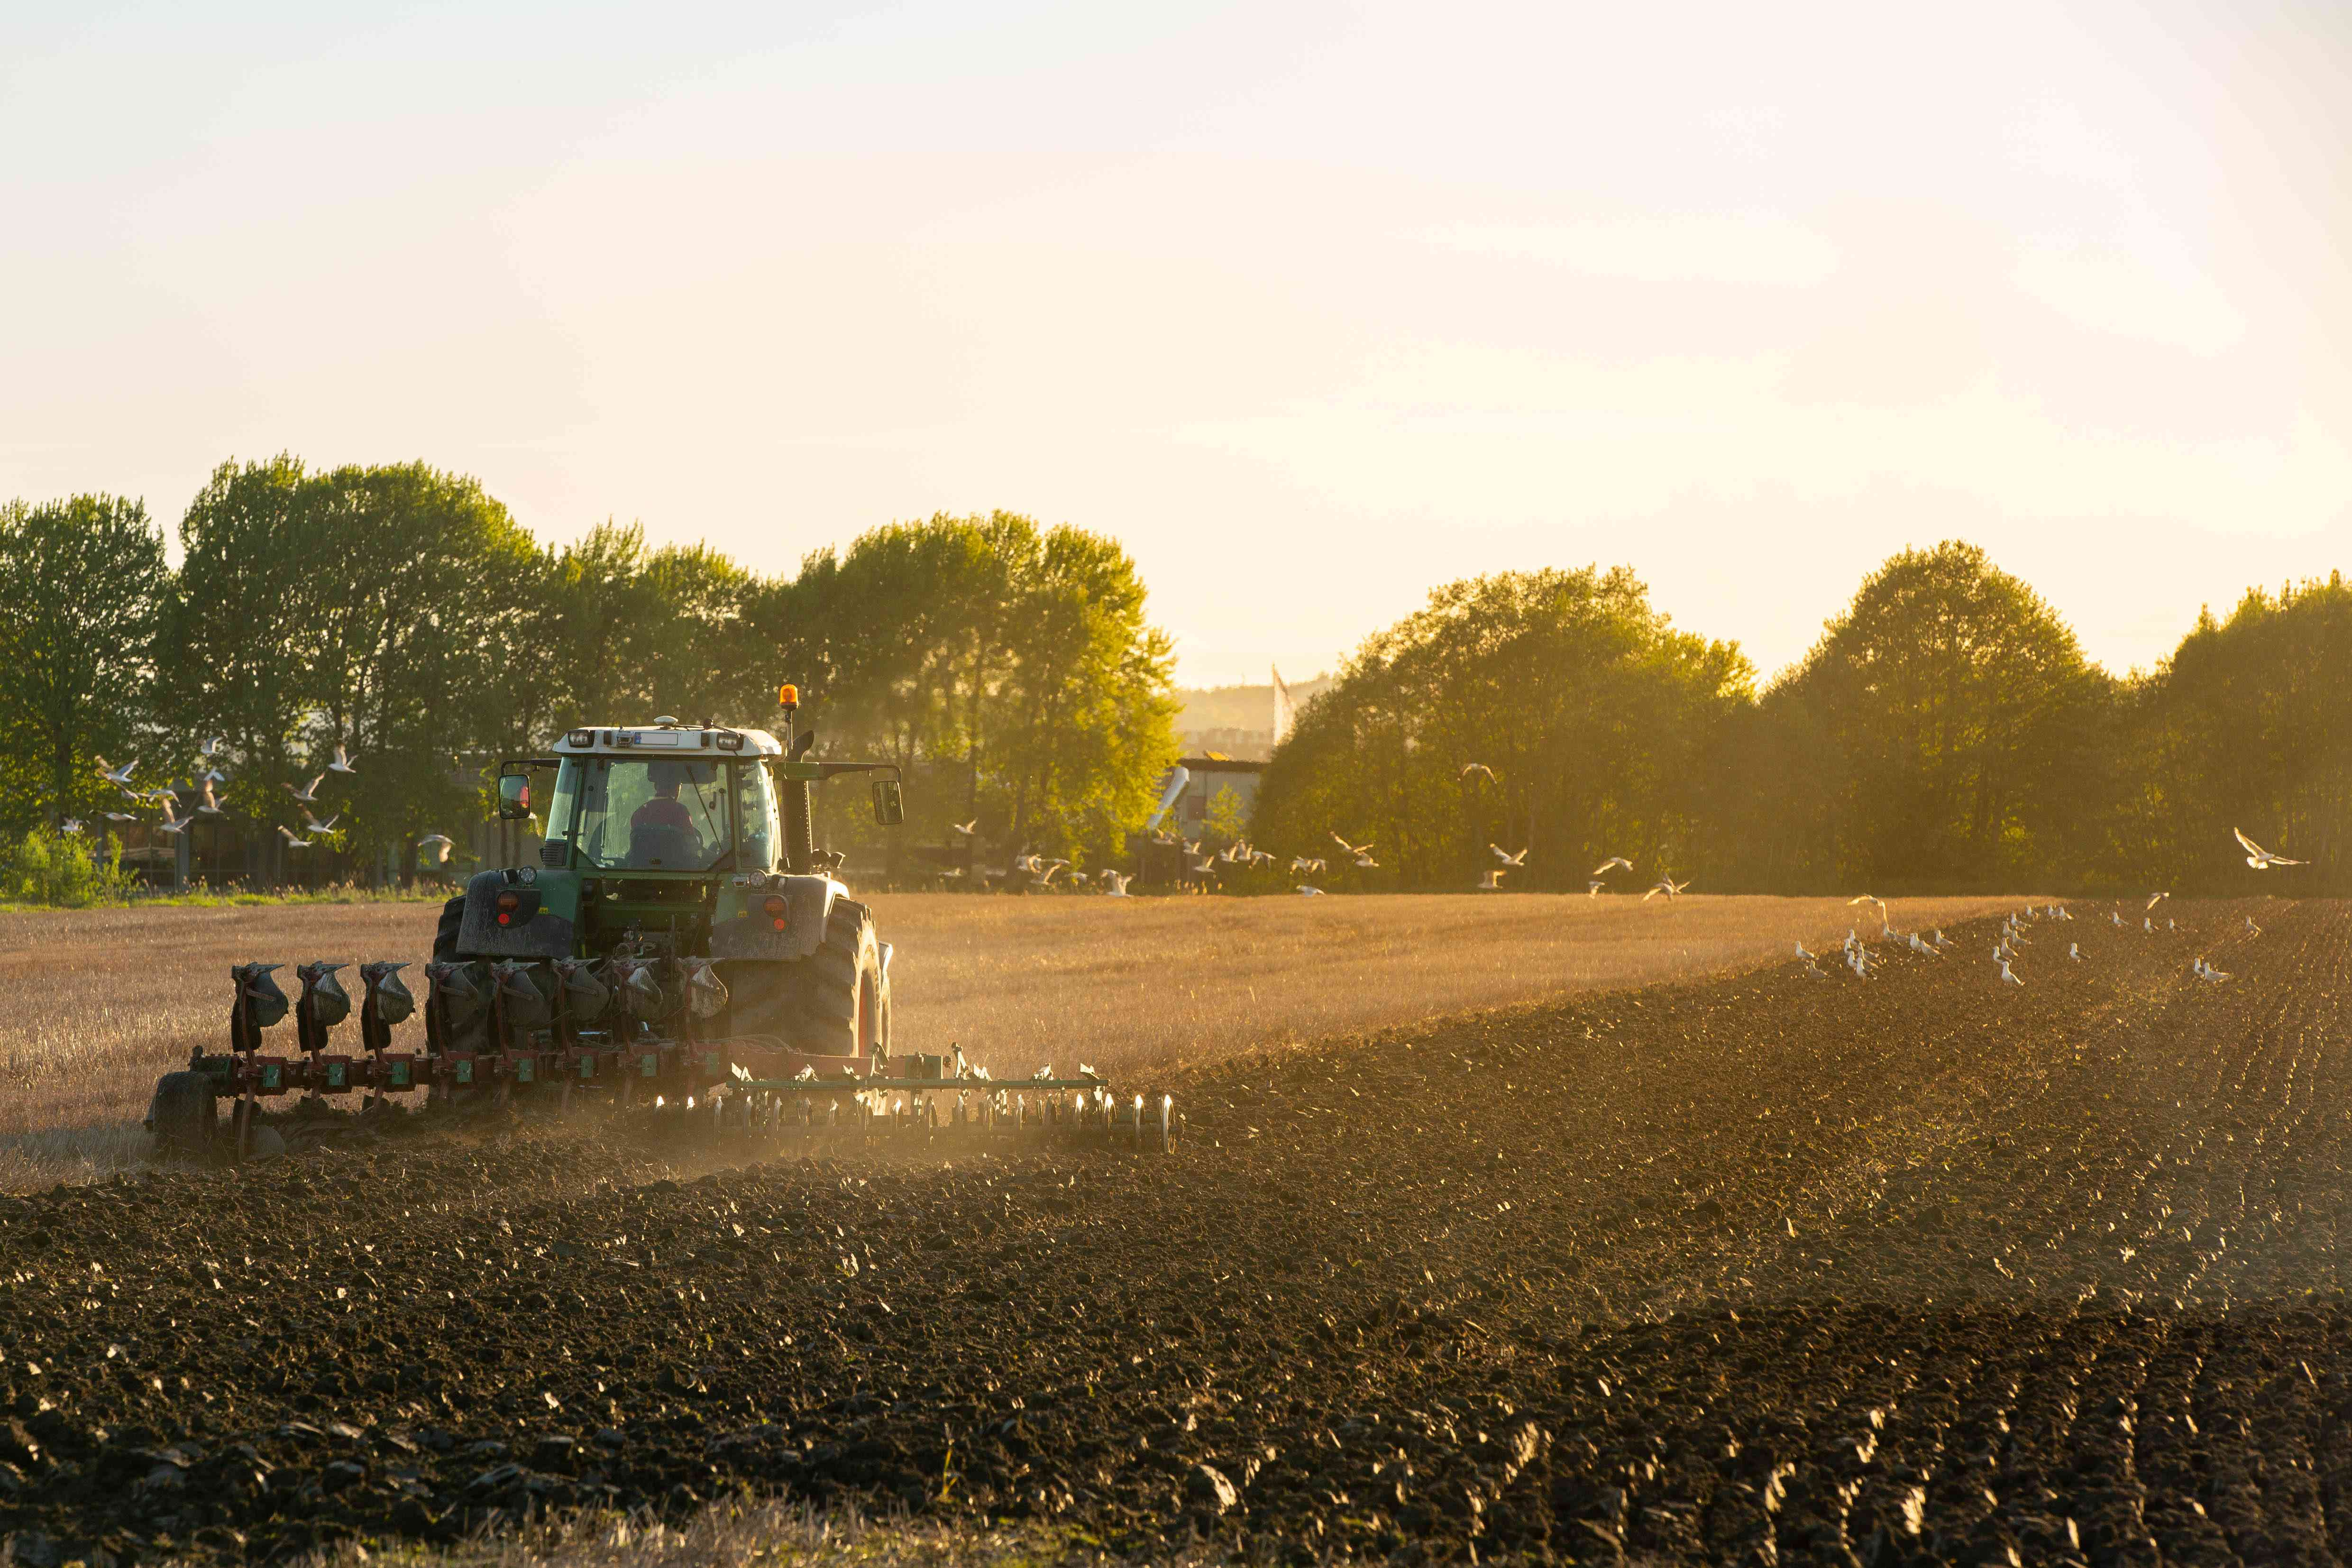 Springtime and time for plowing soil